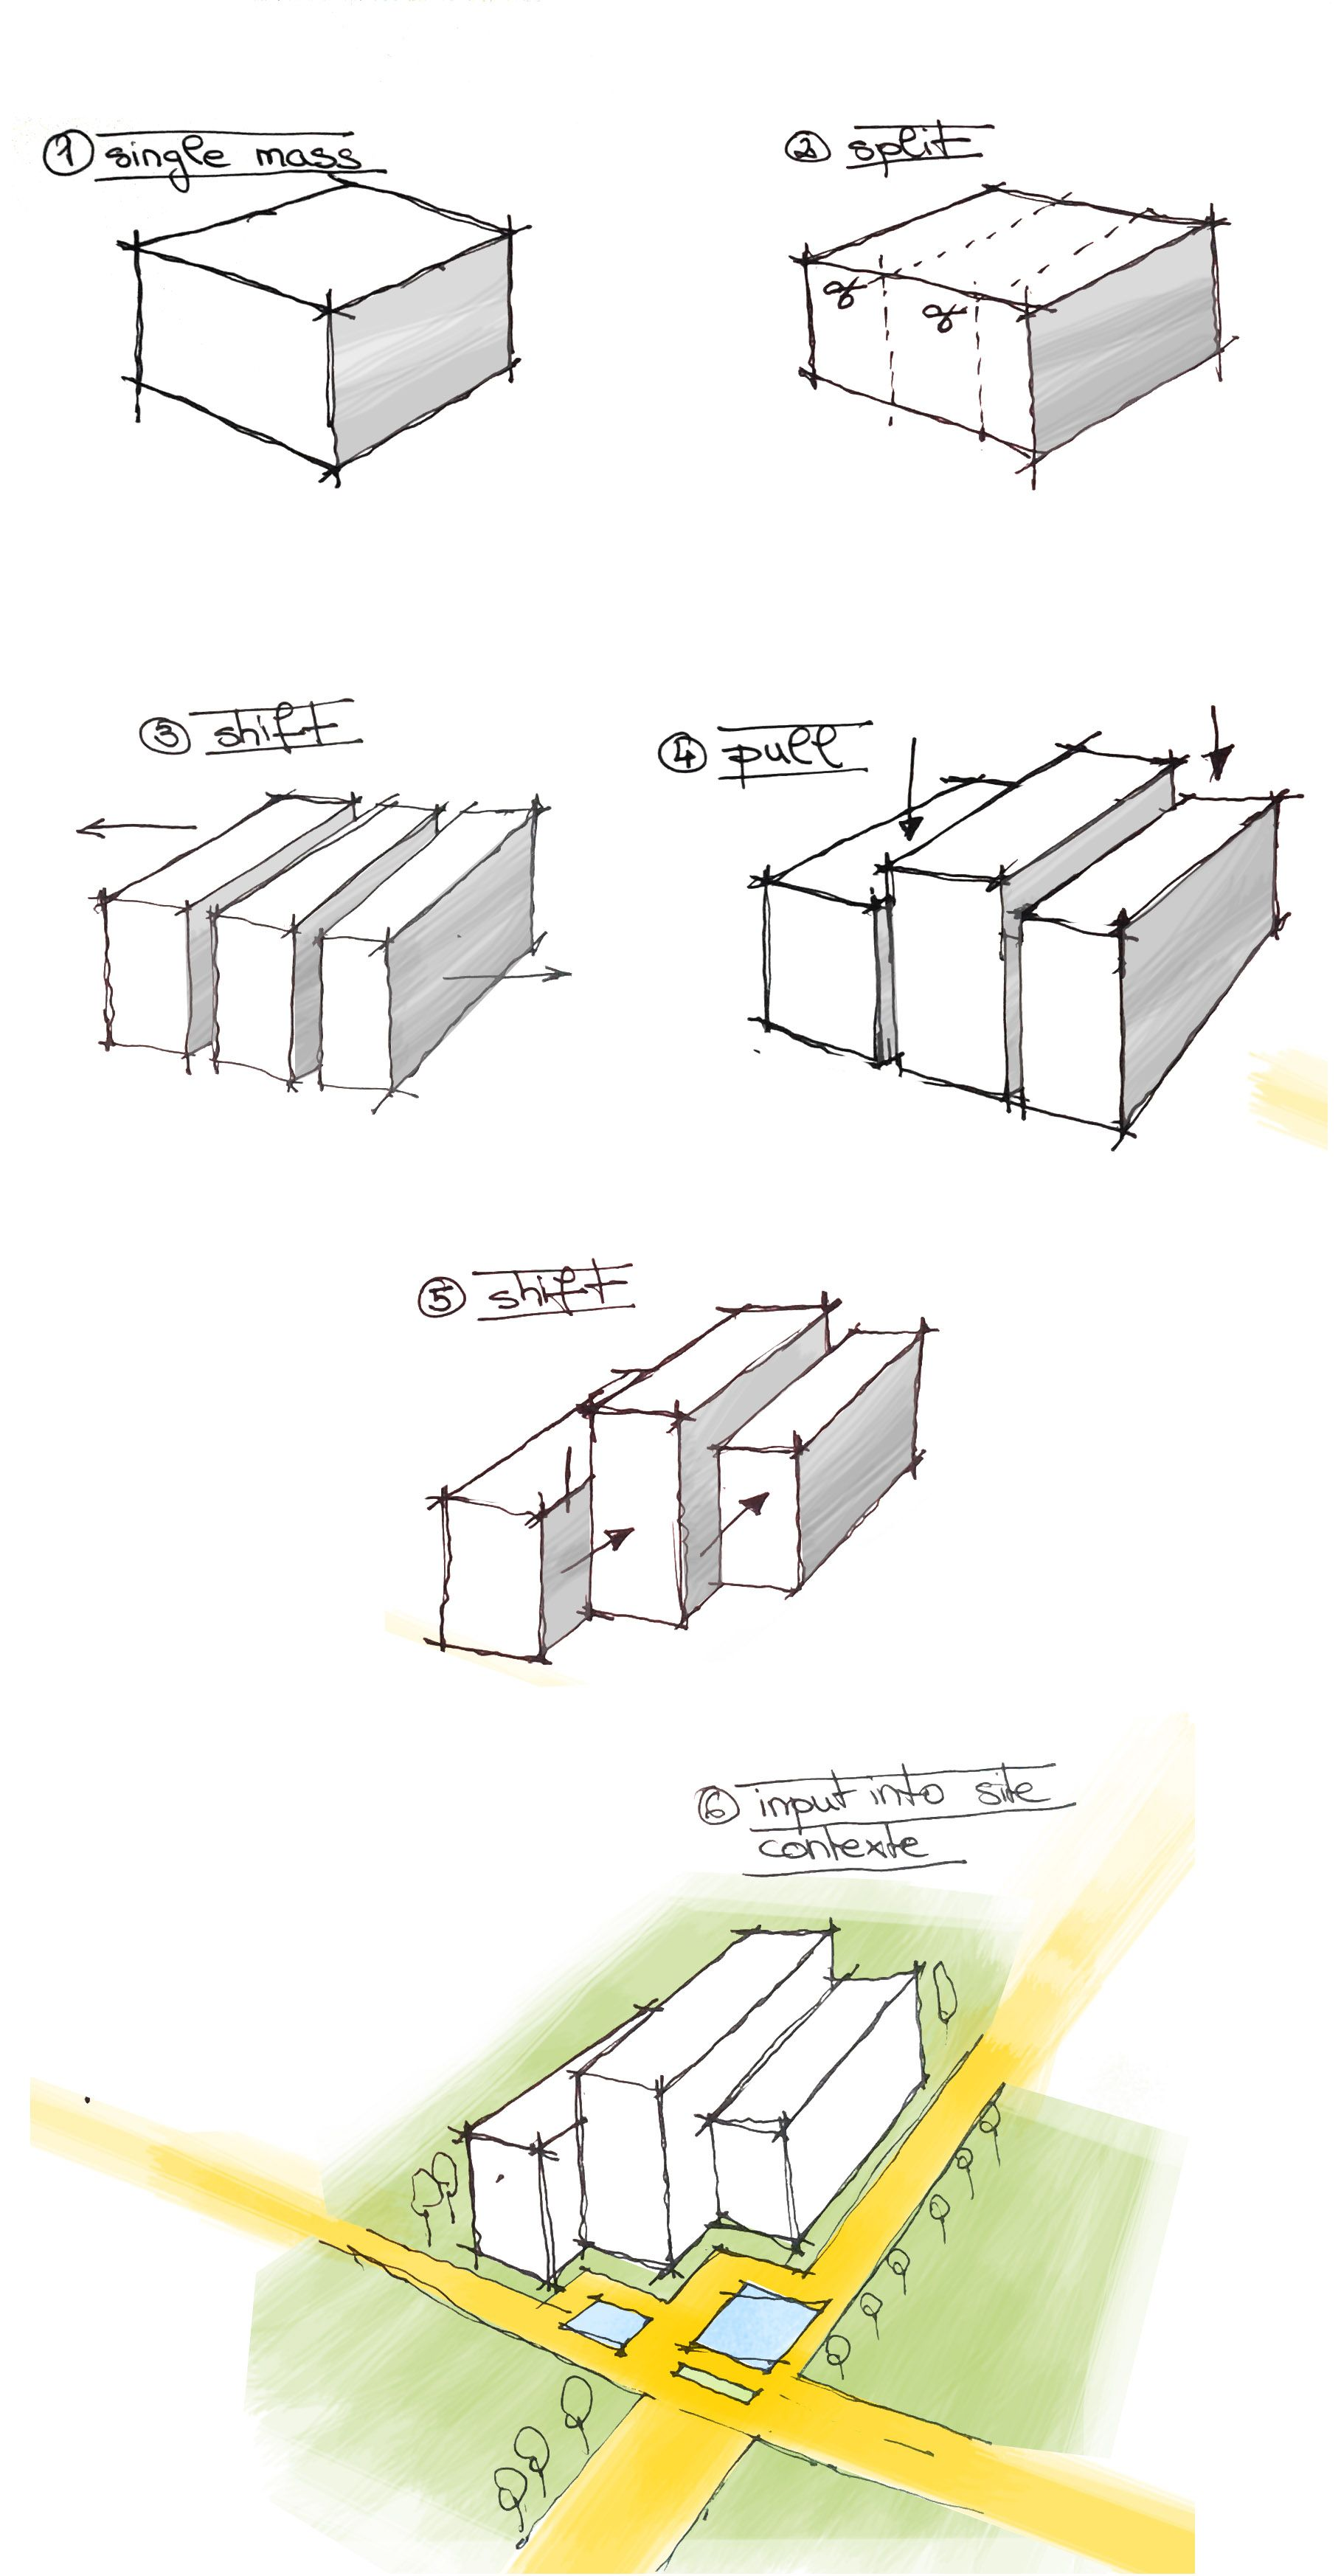 progression of simple design process from geometric shape leading to